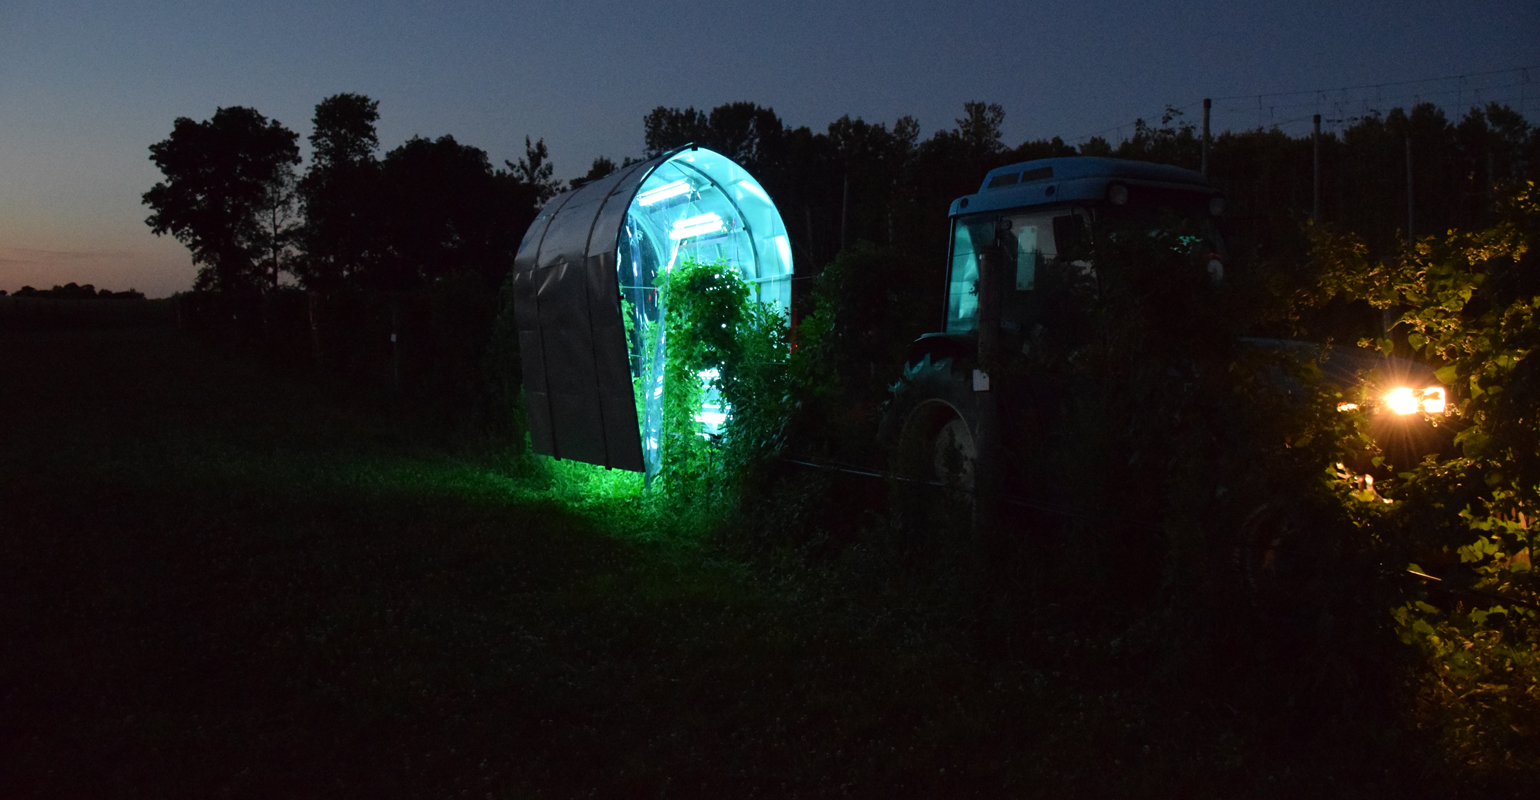 UV light treatments glow from an enclosure in the field shown at night